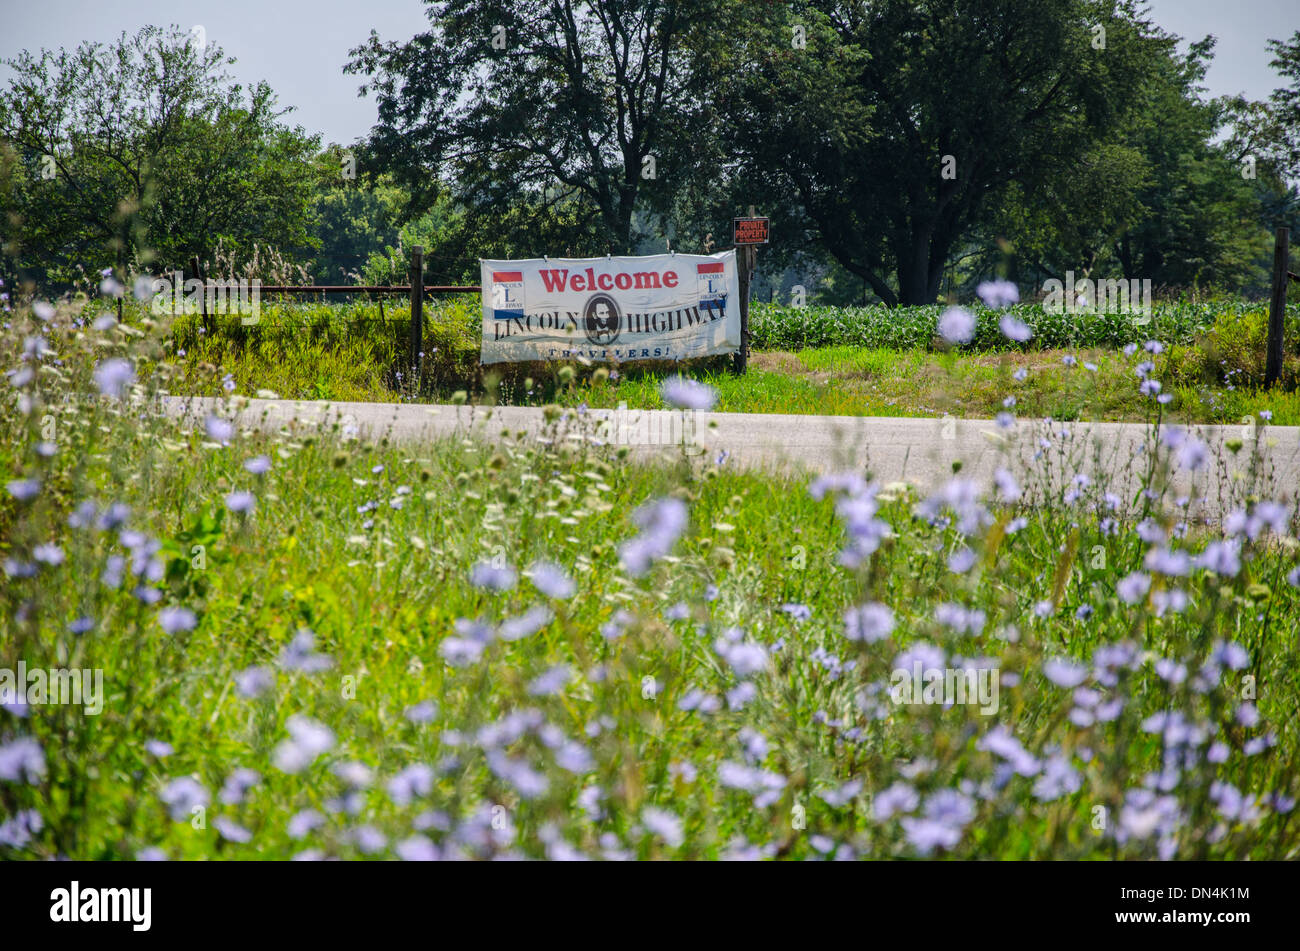 Welcome to the Lincoln Highway banner near to Franklin Grove, Illinois, a town along the Lincoln Highway - Stock Image